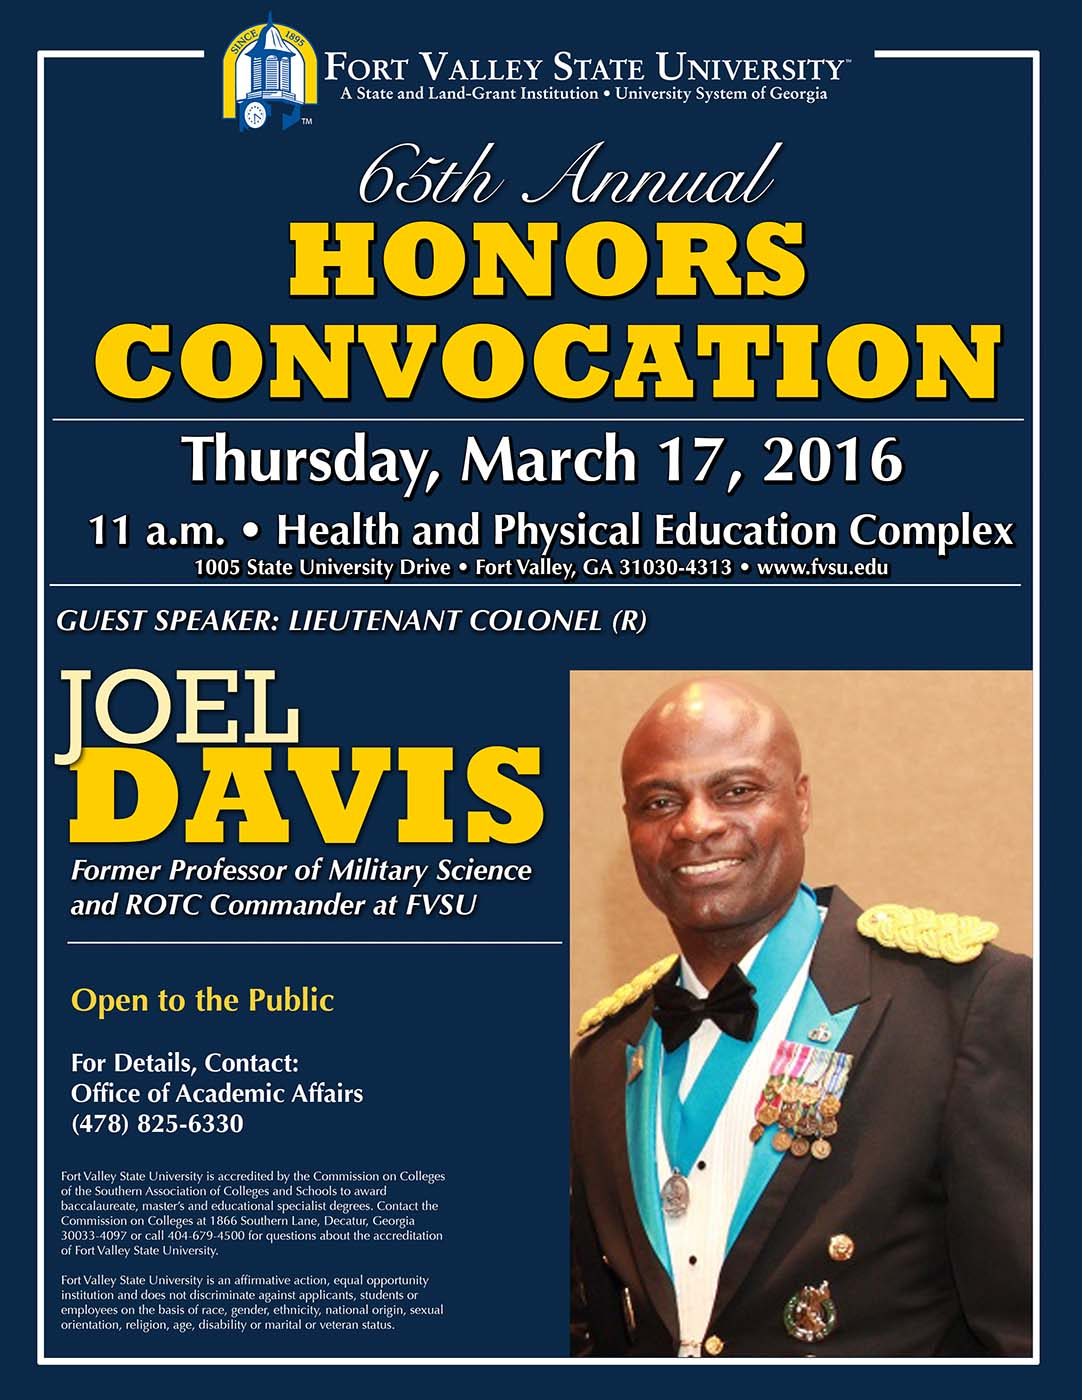 Honors Convocation flyer